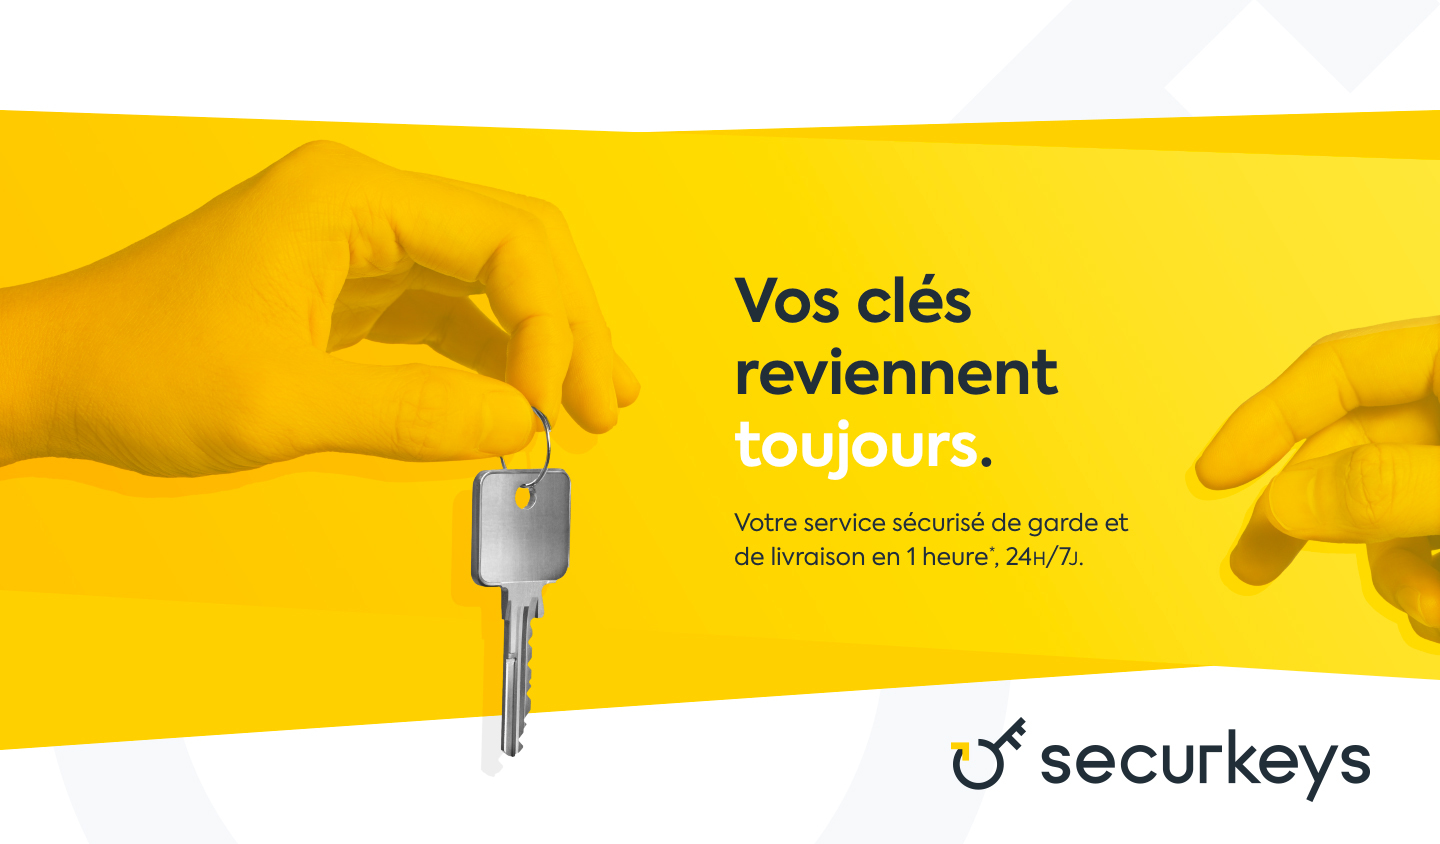 securkeys_visual.jpg#asset:20694